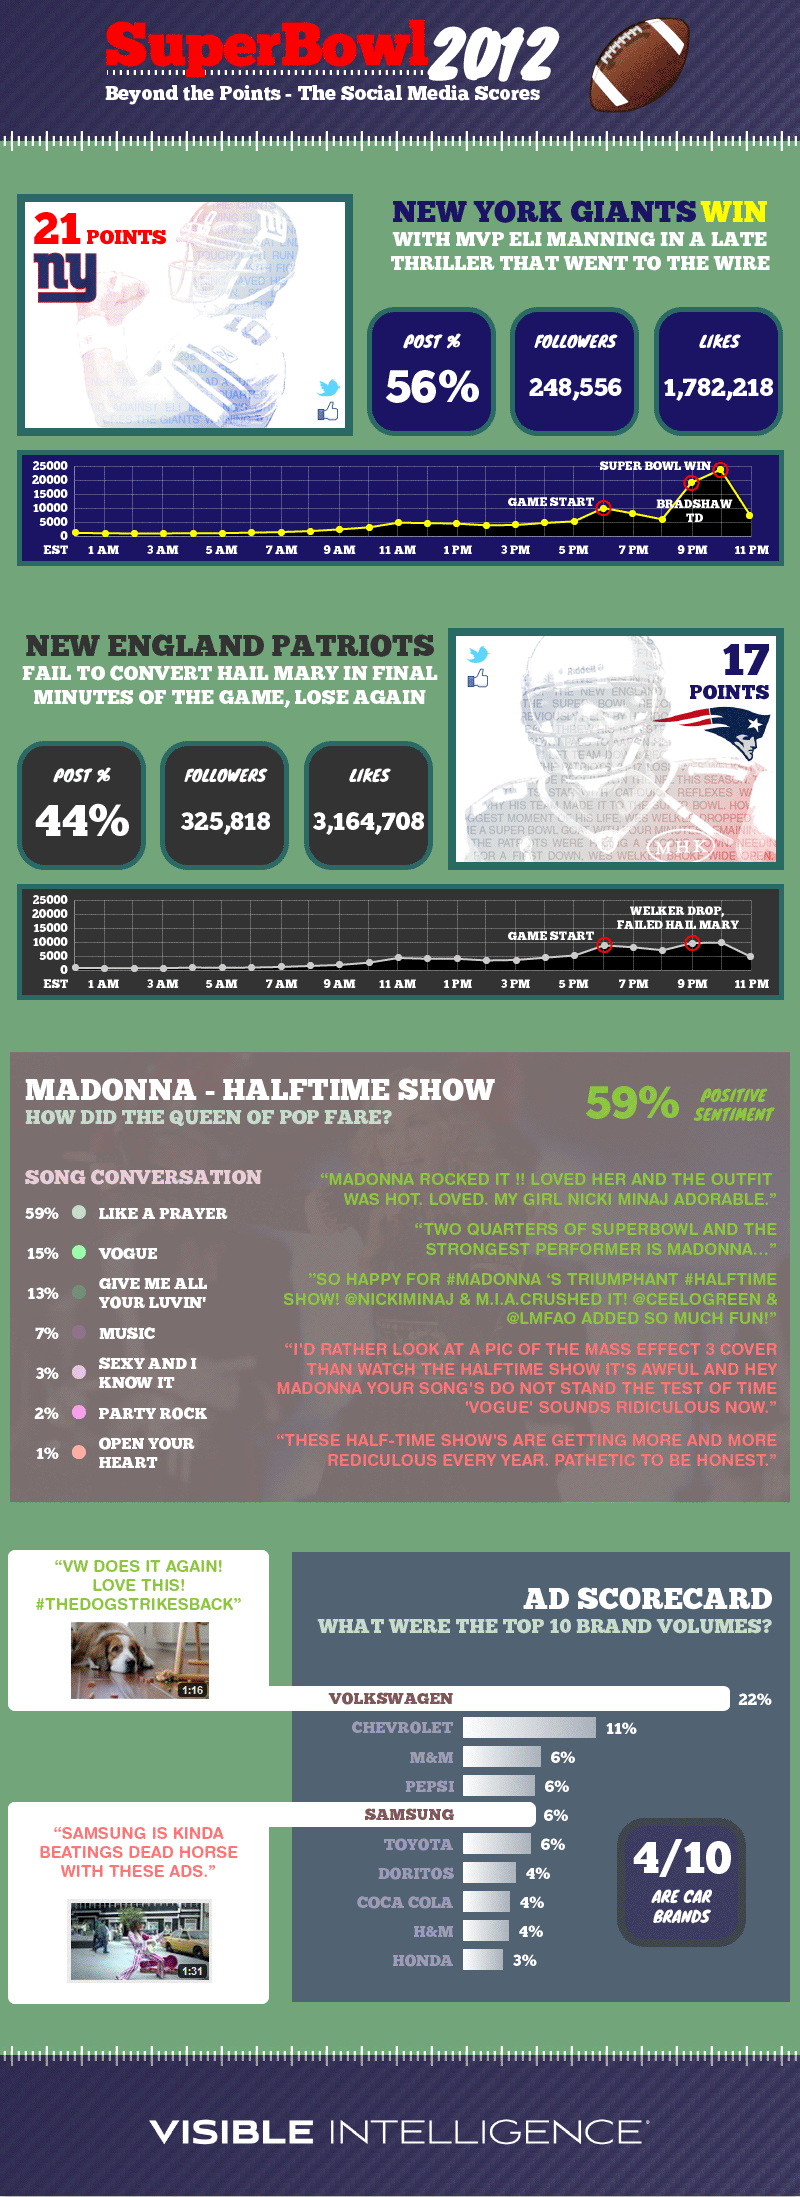 Super Bowl 2012: Beyond the Points – The Social Media Scores